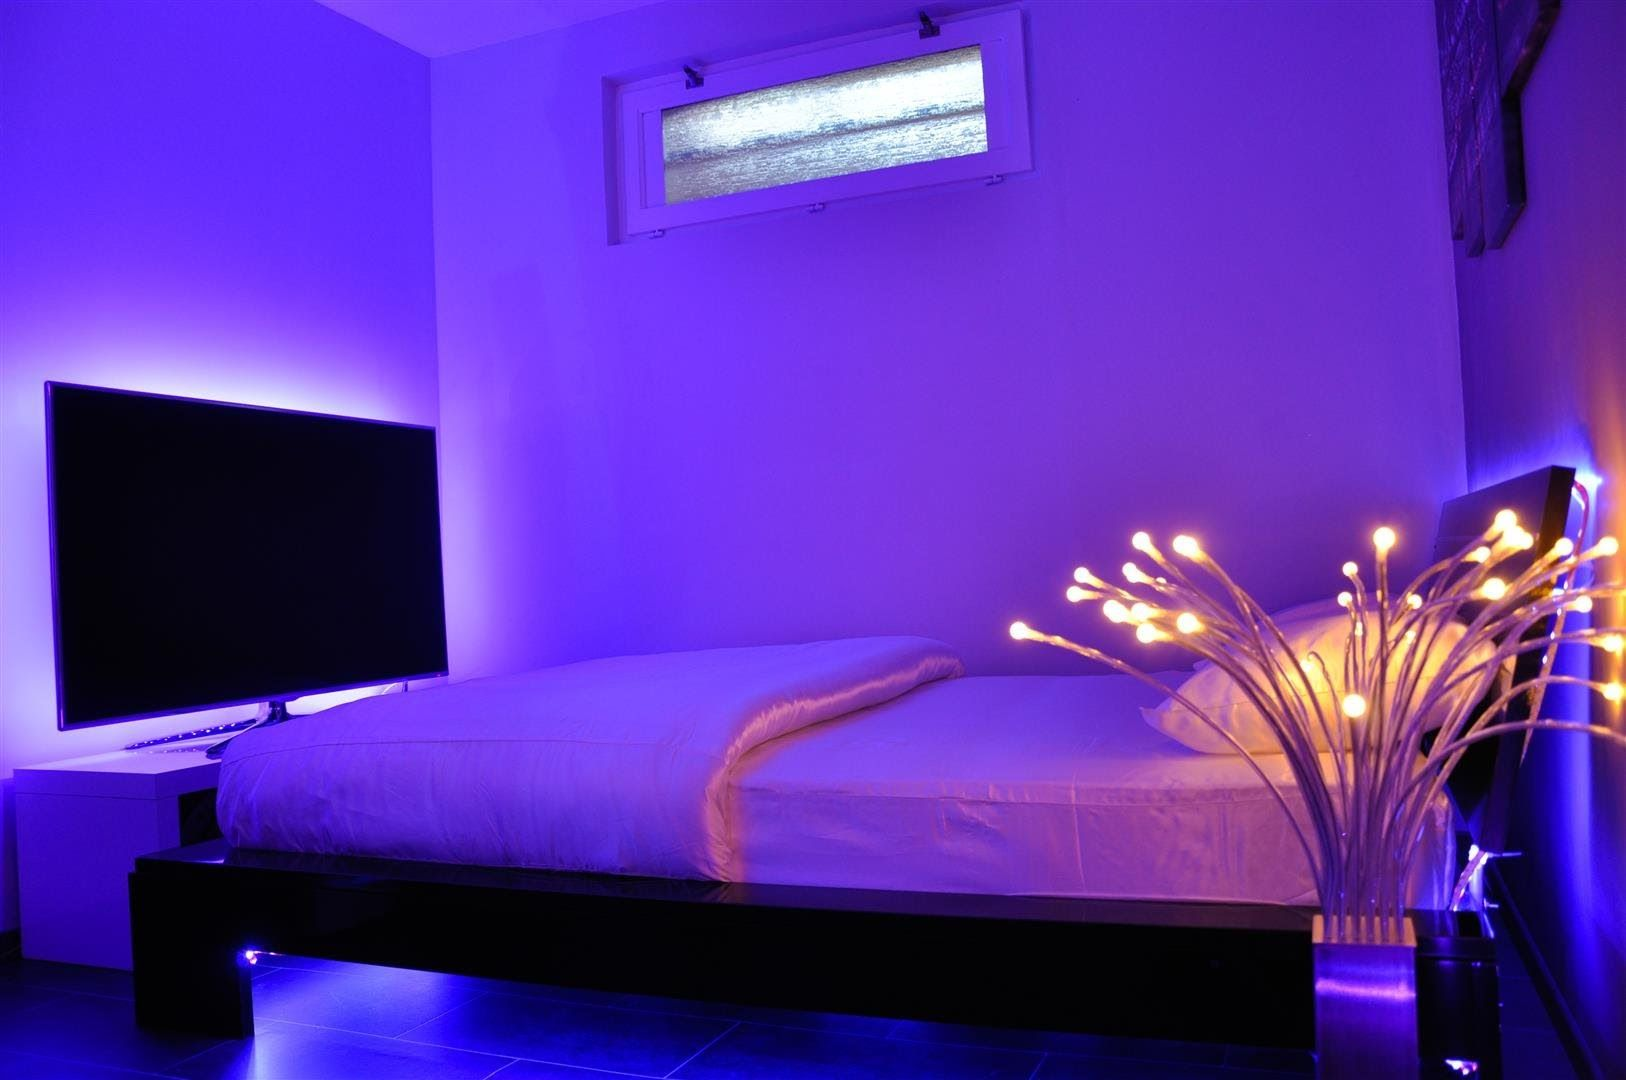 bedroom with a tv the has strip lighting illuminating it from behind